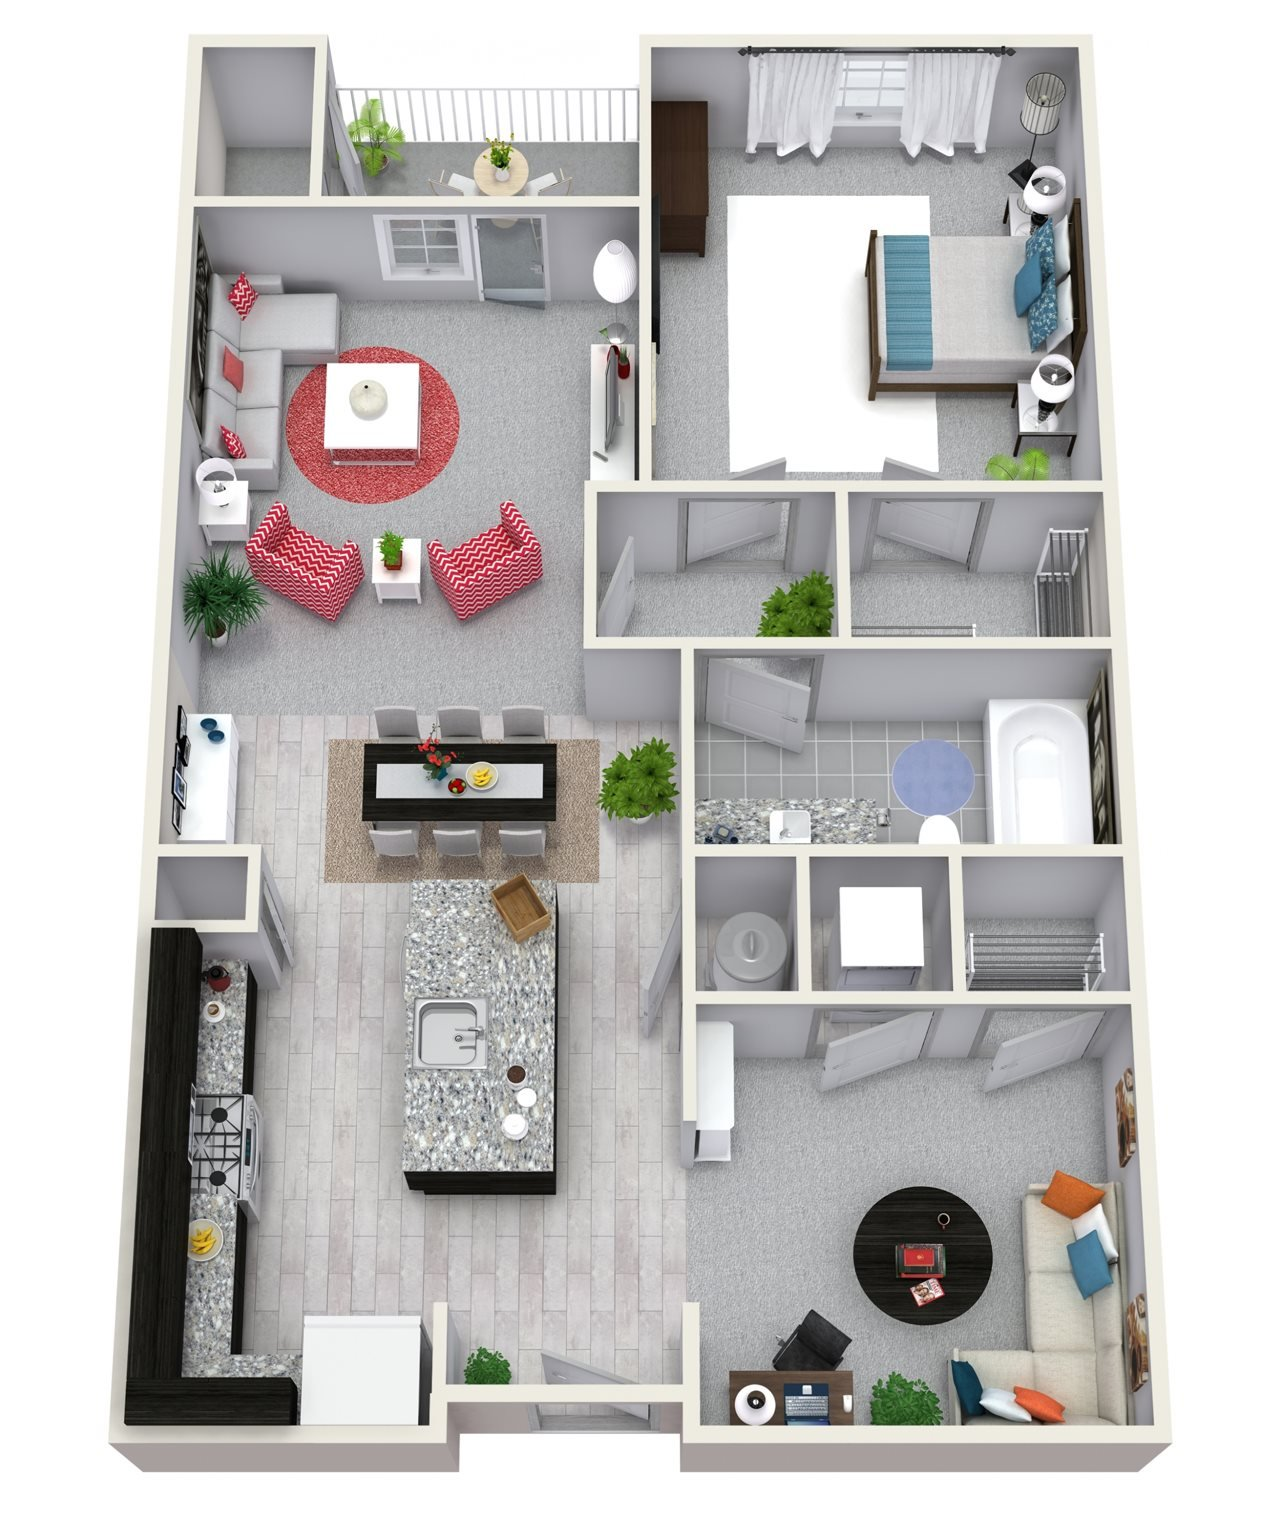 1 Bedroom 1 Bath 821 sqft A3 Floor Plan 3